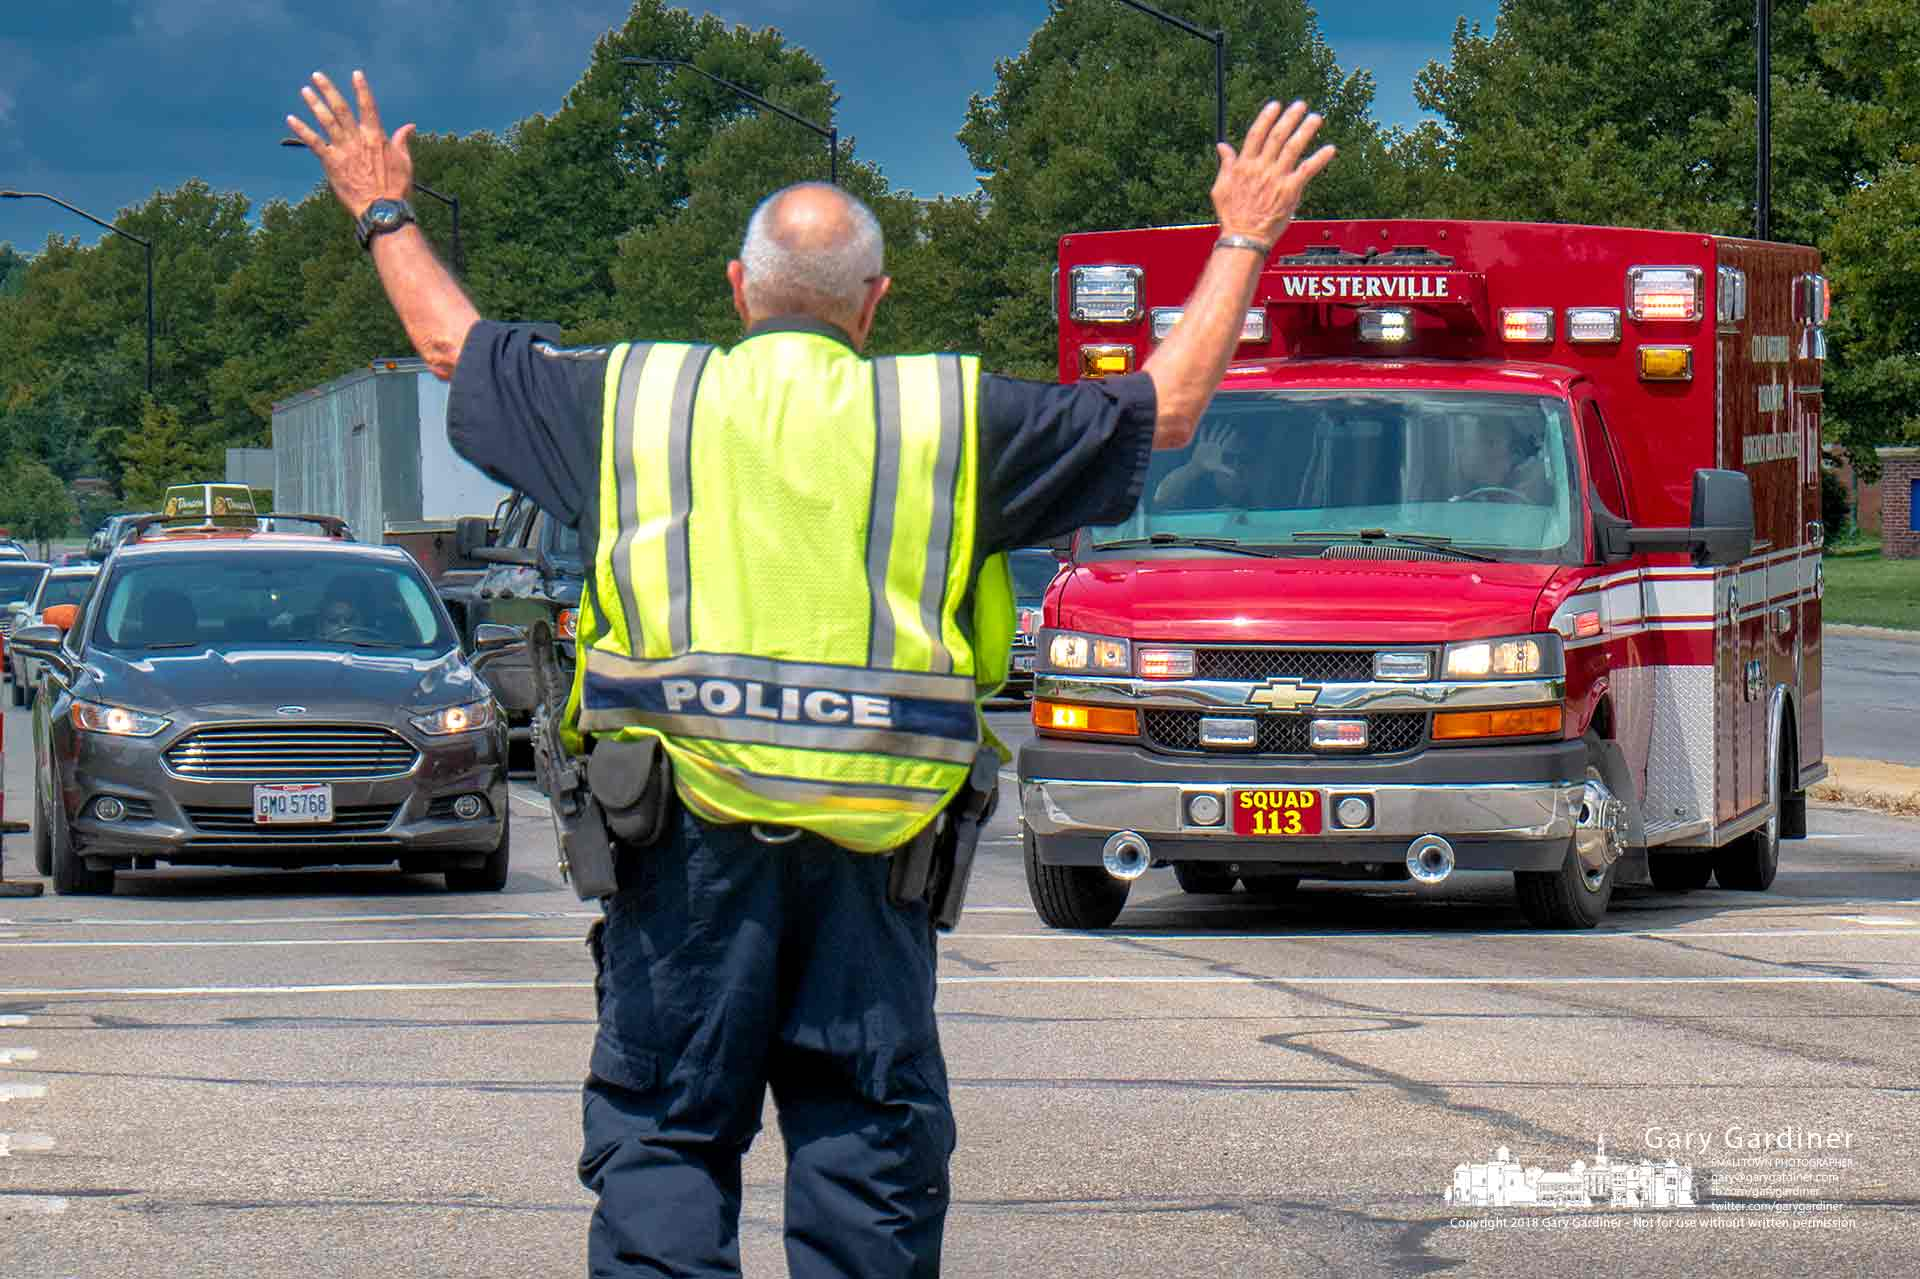 A Westerville Reserve Police Officer stops traffic at Maxtown and State for a fire department emergency squad to navigate around heavy traffic near the road project site. My Final Photo for Aug. 14, 2018.